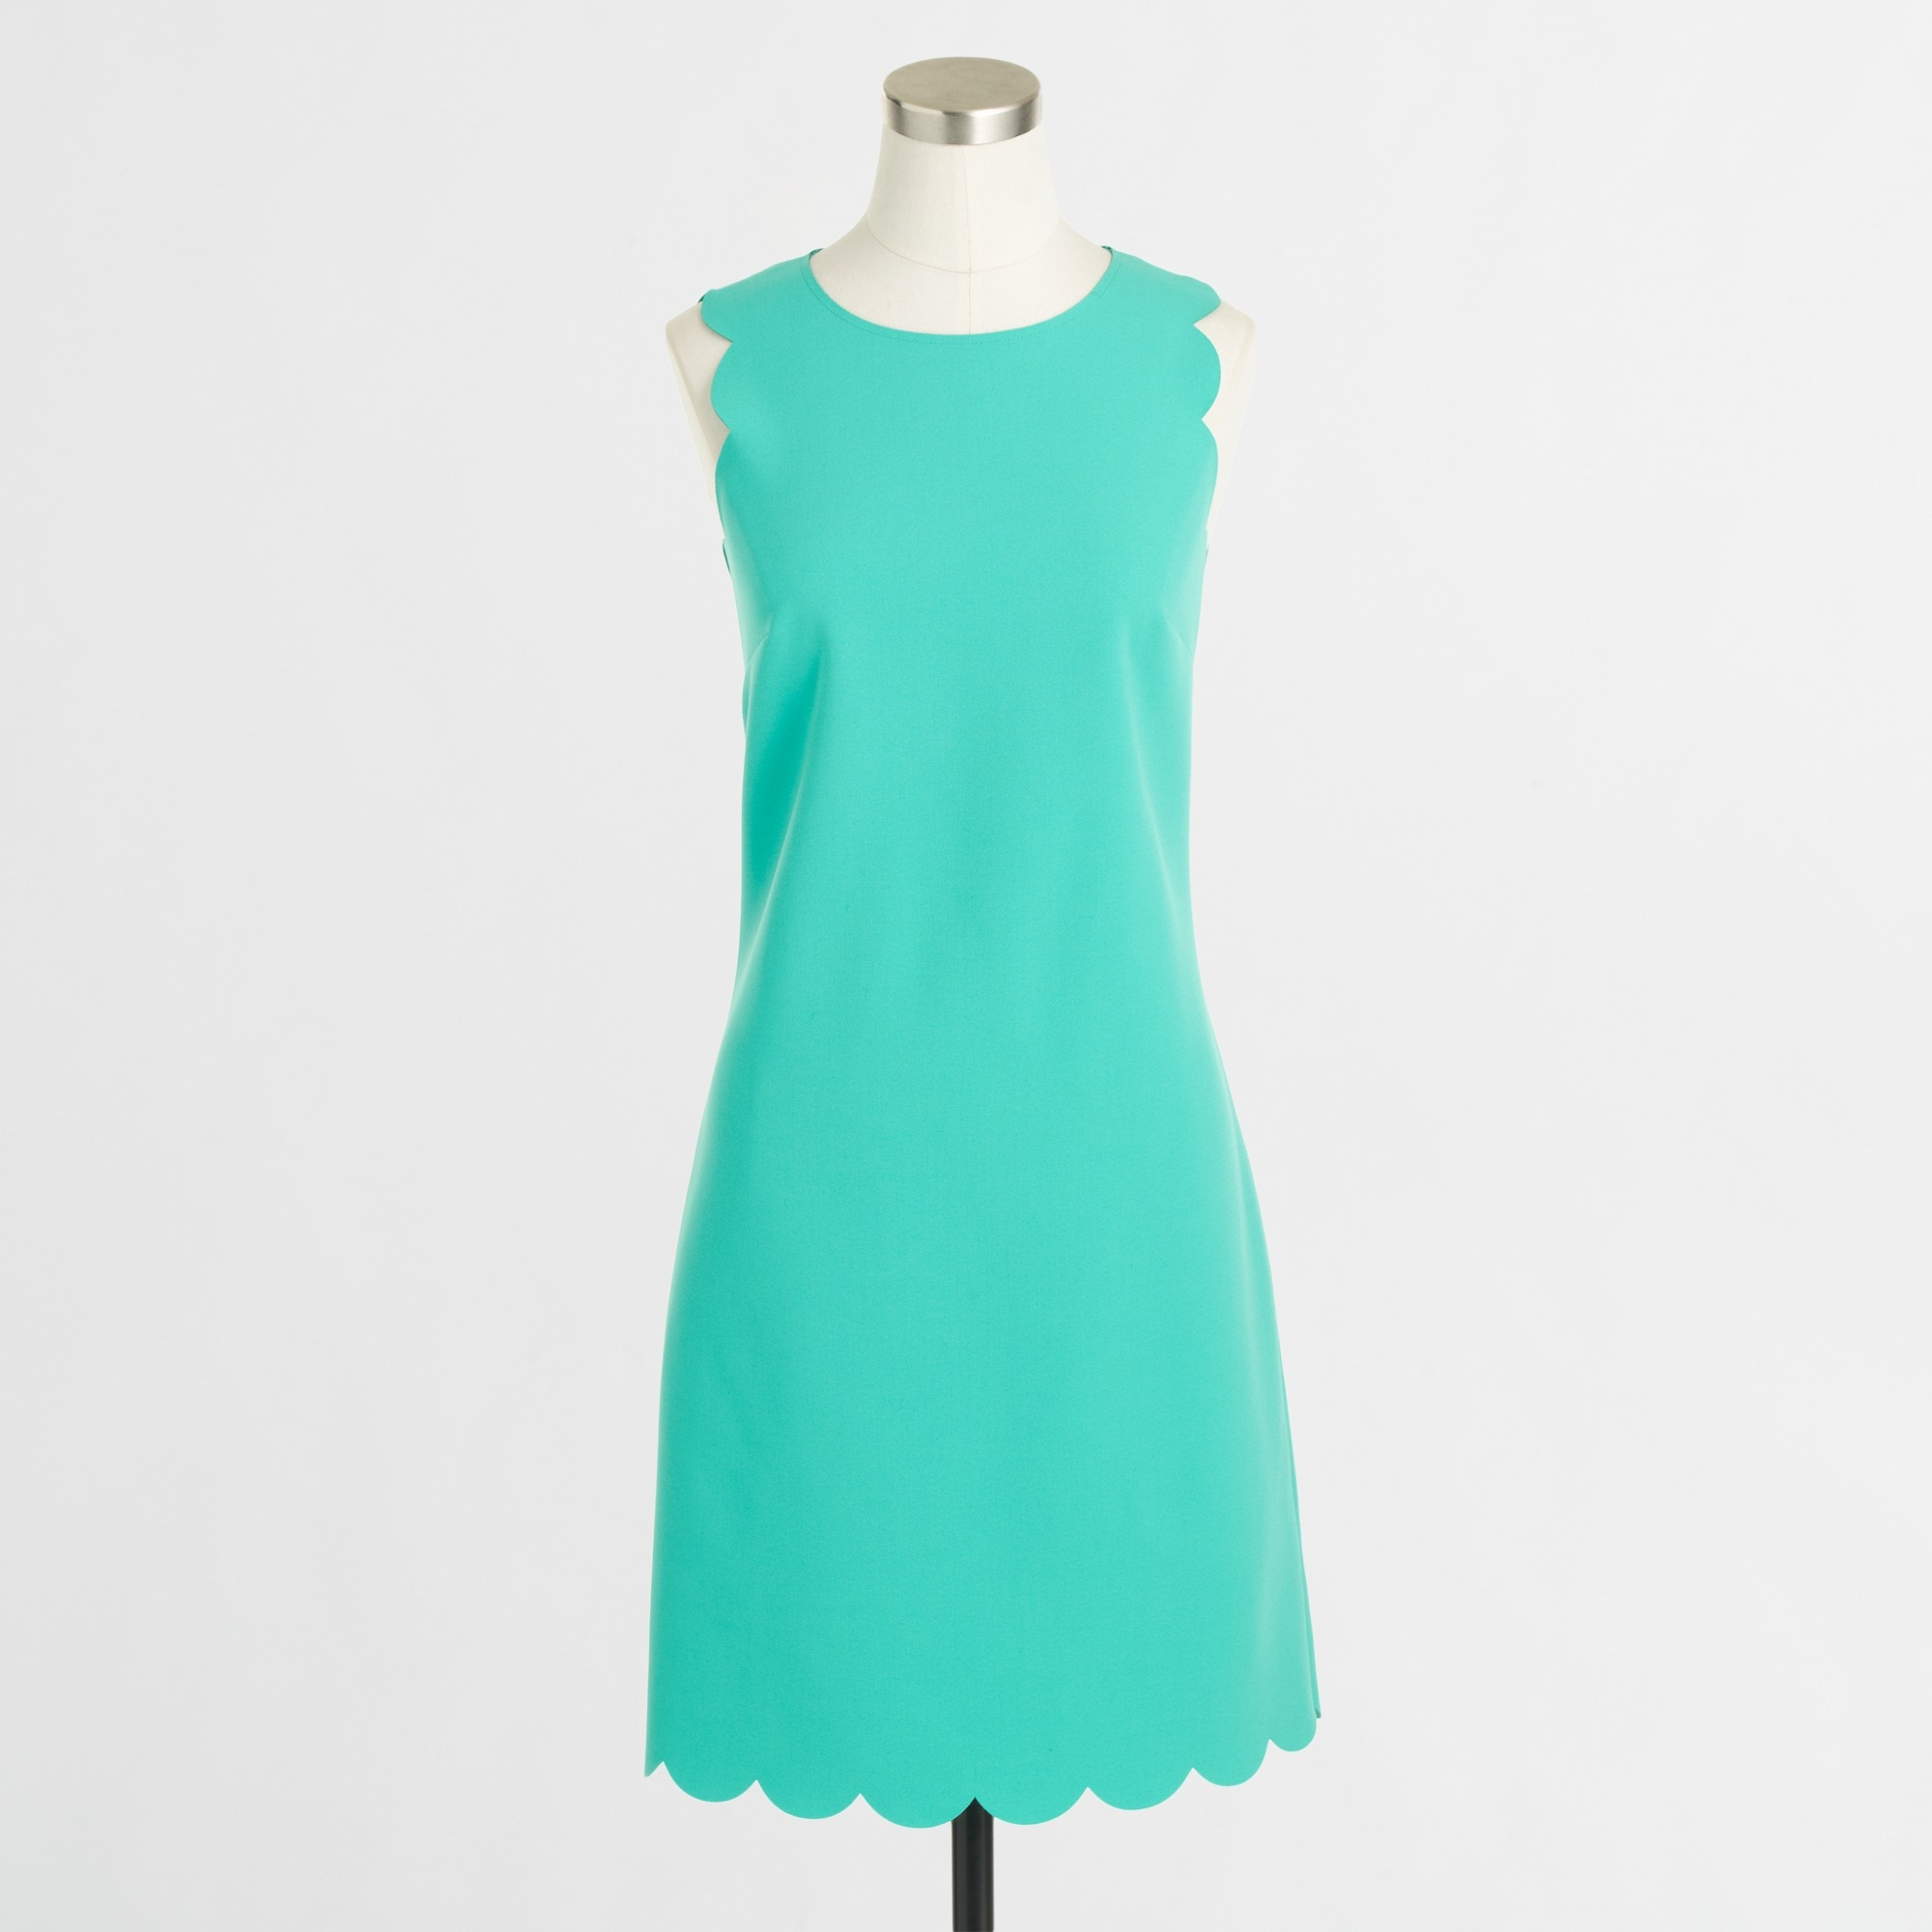 Factory scalloped shift dress